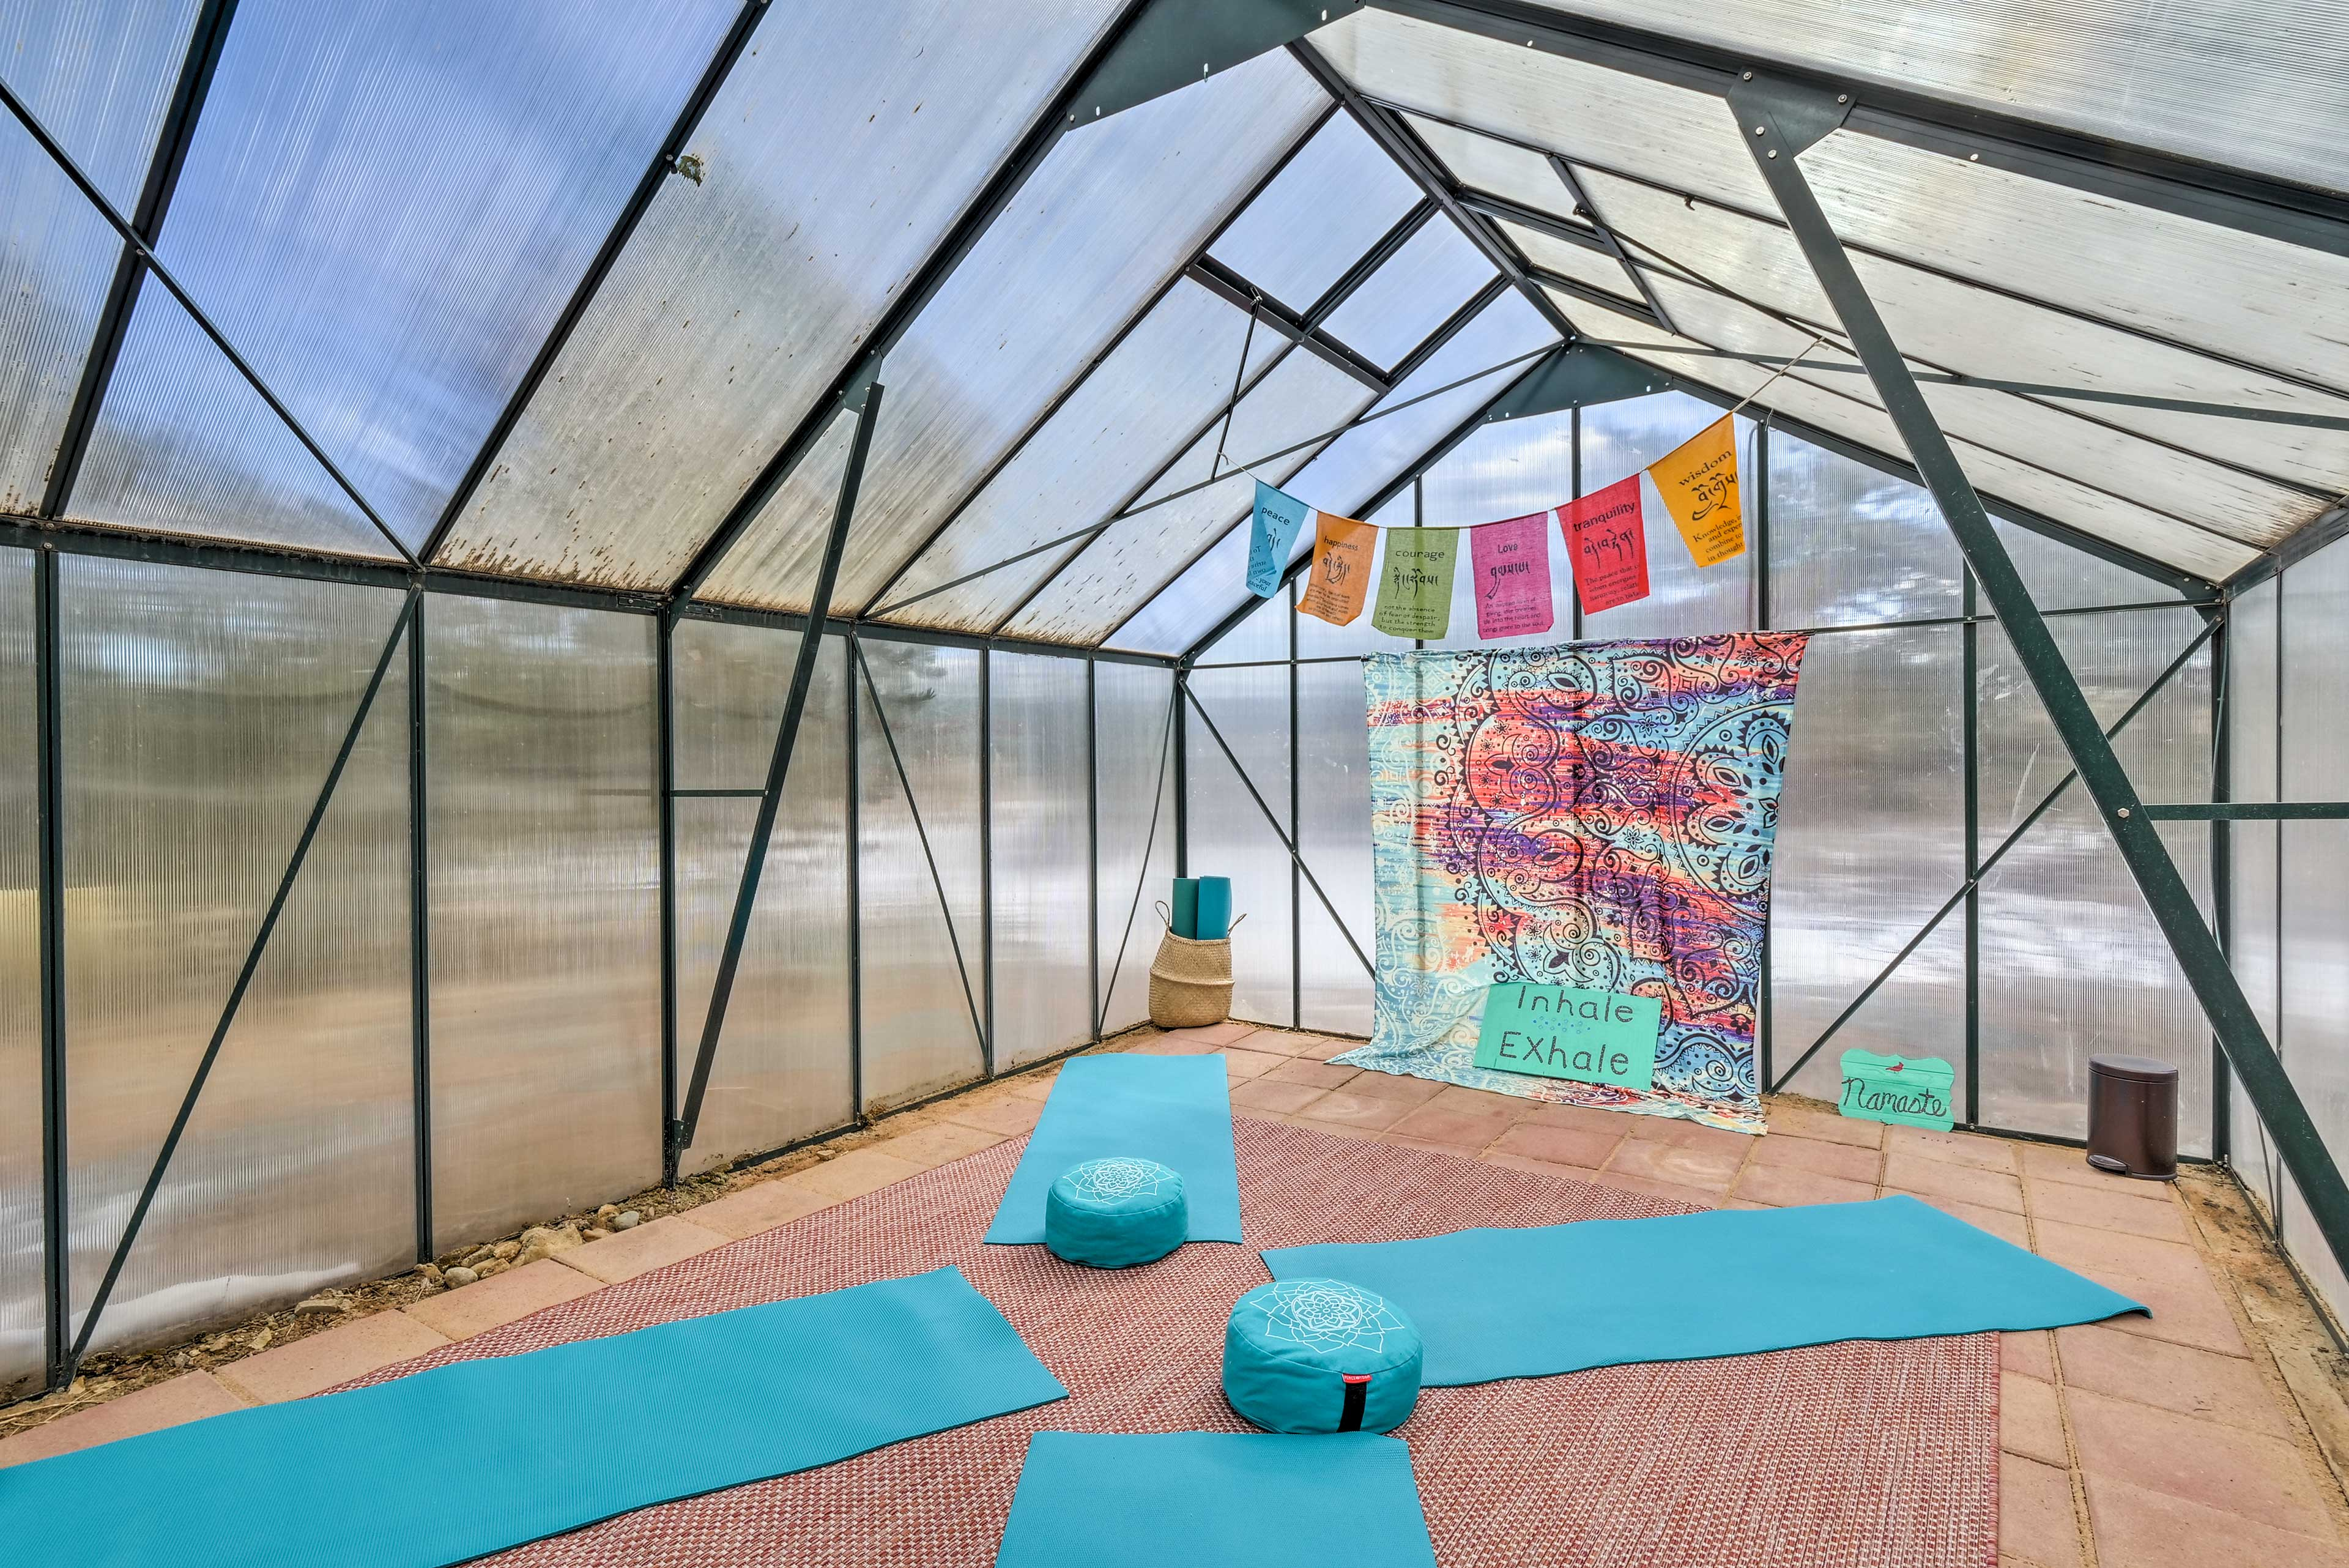 The greenhouse has been converted into a yoga room!